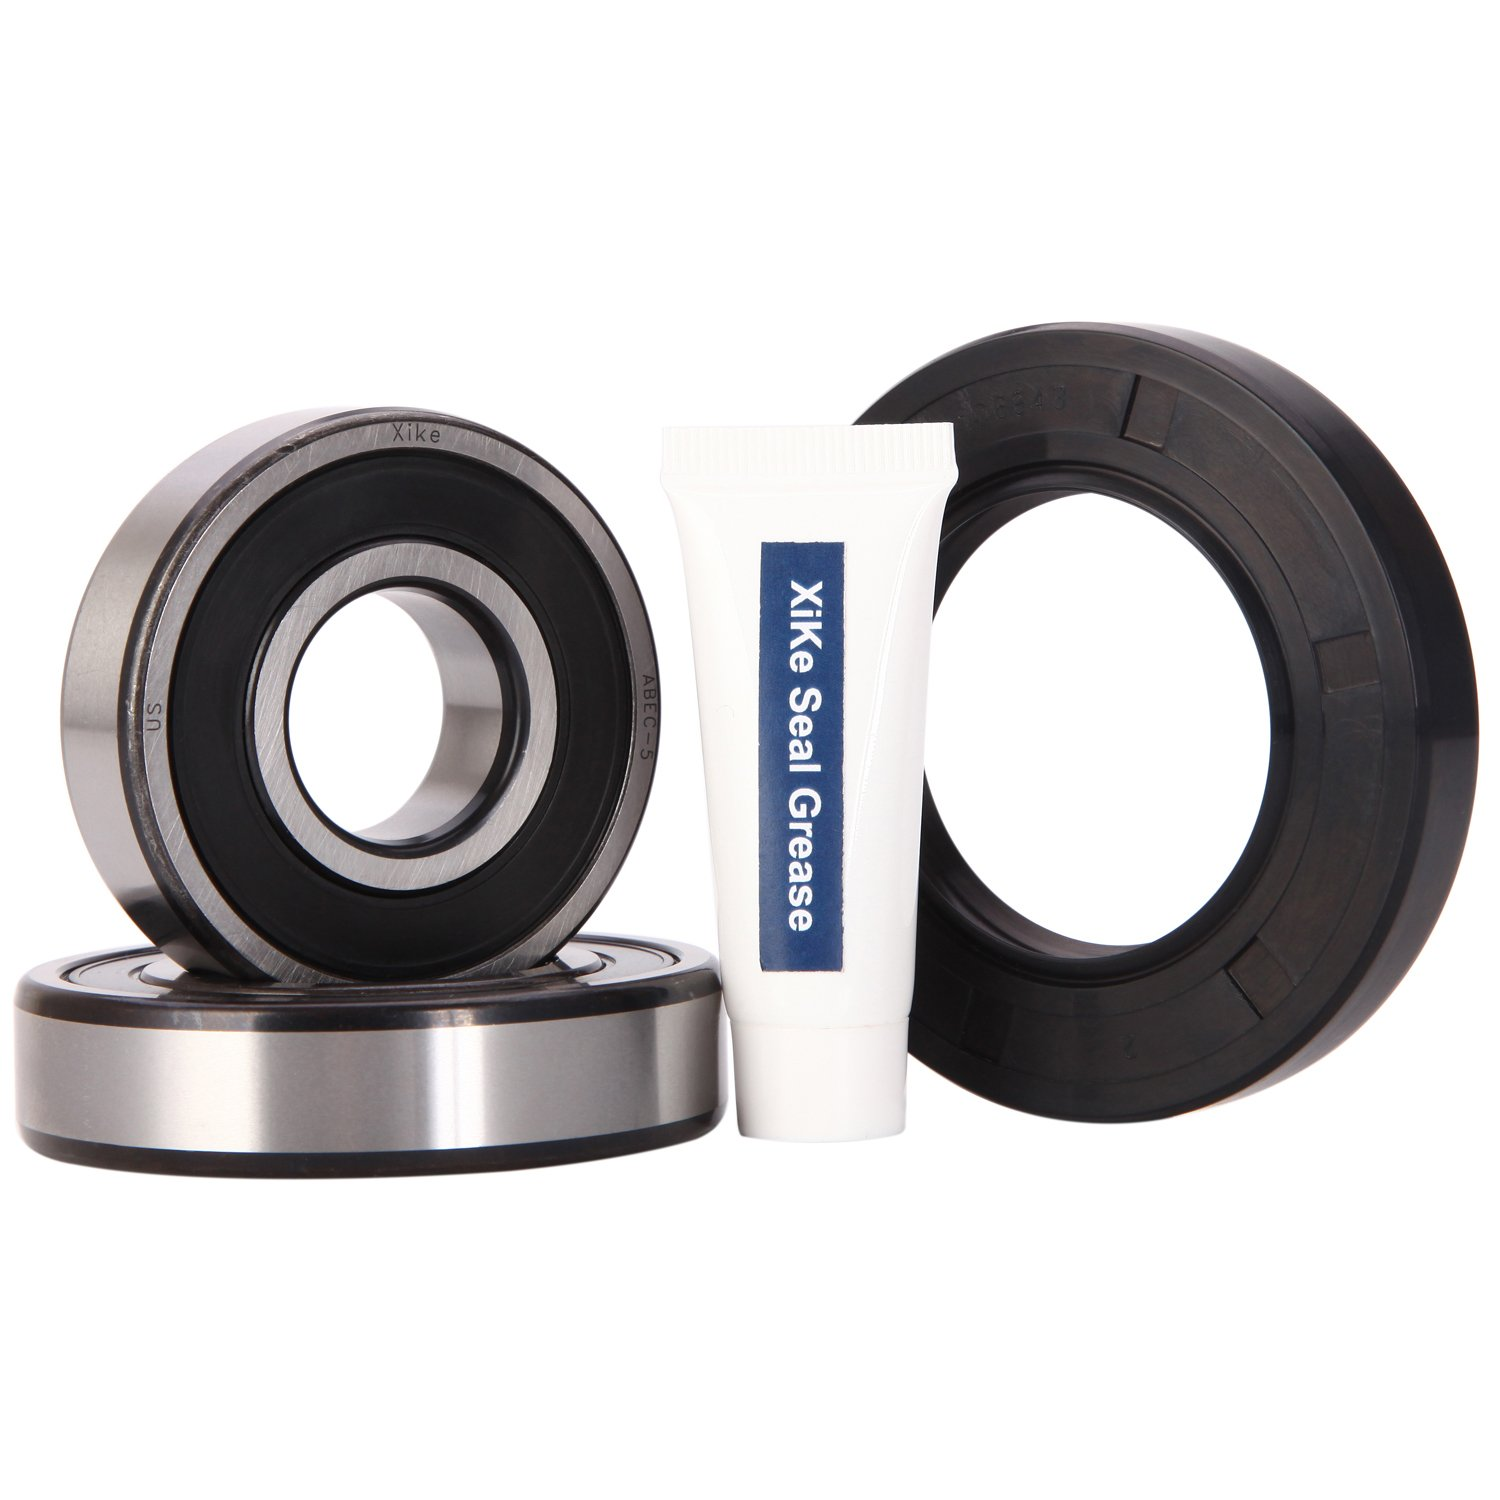 XiKe 134509510 Front Load Washer Tub Bearing & Seal Kit, Rotate Quiet and Durable Replacement for Frigidaire, Kenmore, Crosley Washer, AP3892114, 1191144, 134509500 Etc. by XiKe (Image #1)